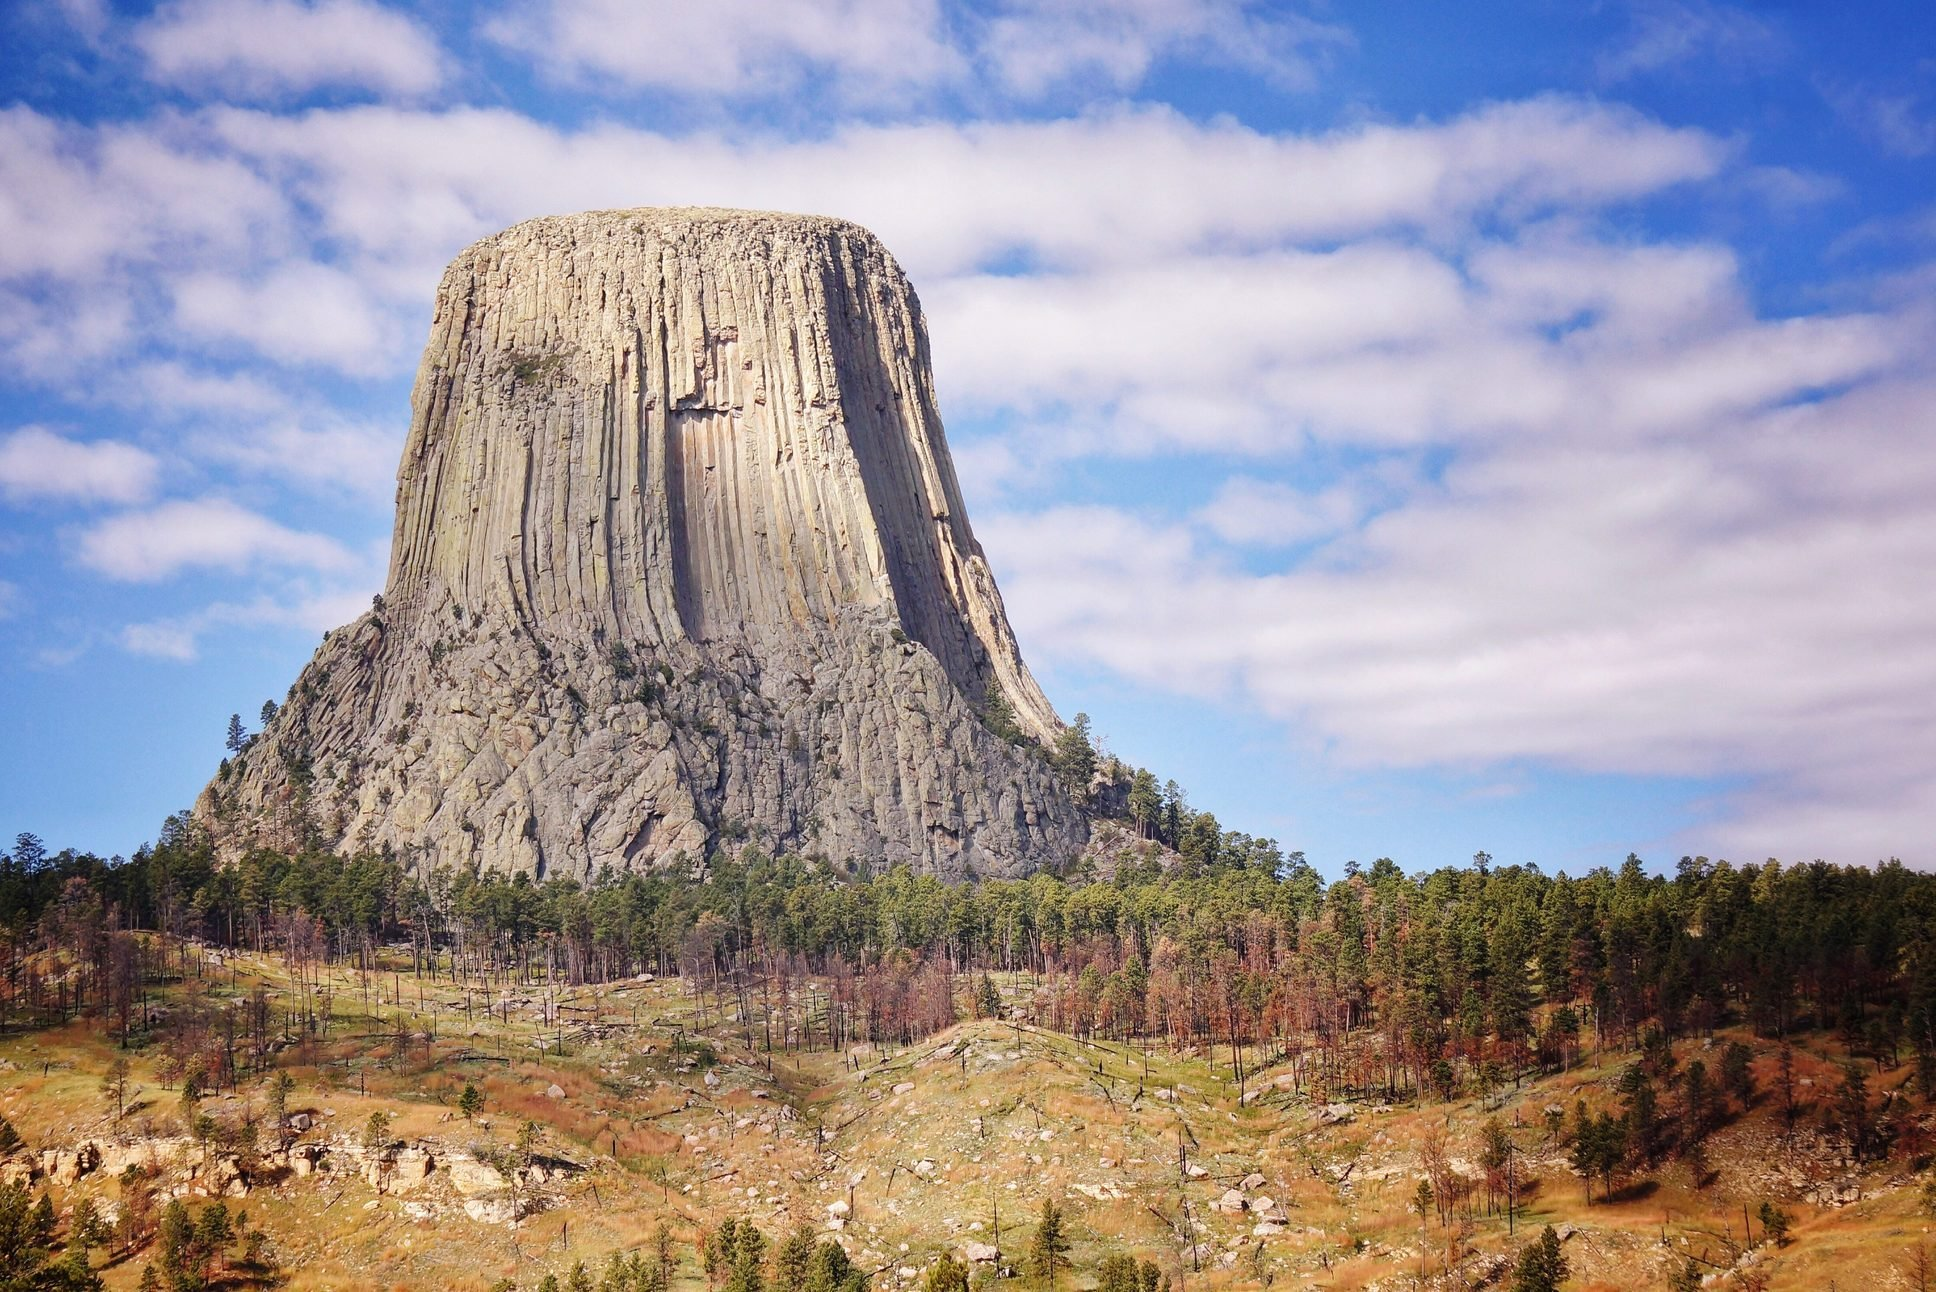 Low Angle View Of Devils Tower National Monument Against Cloudy Sky